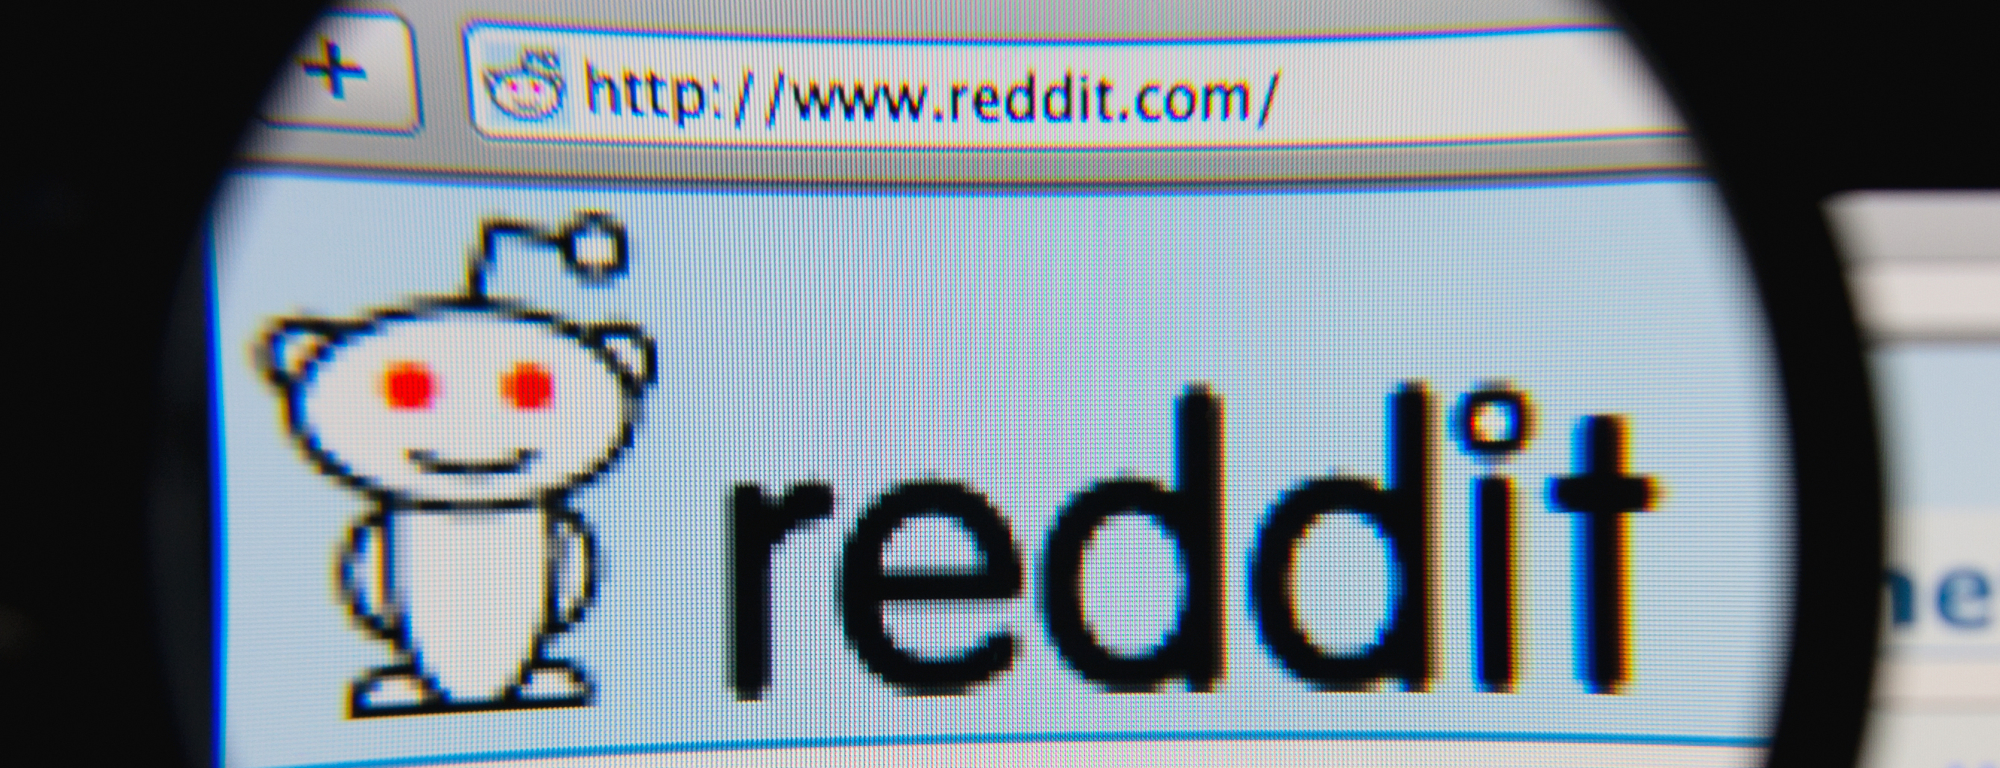 Reddit is launching a news site with no comments or votes